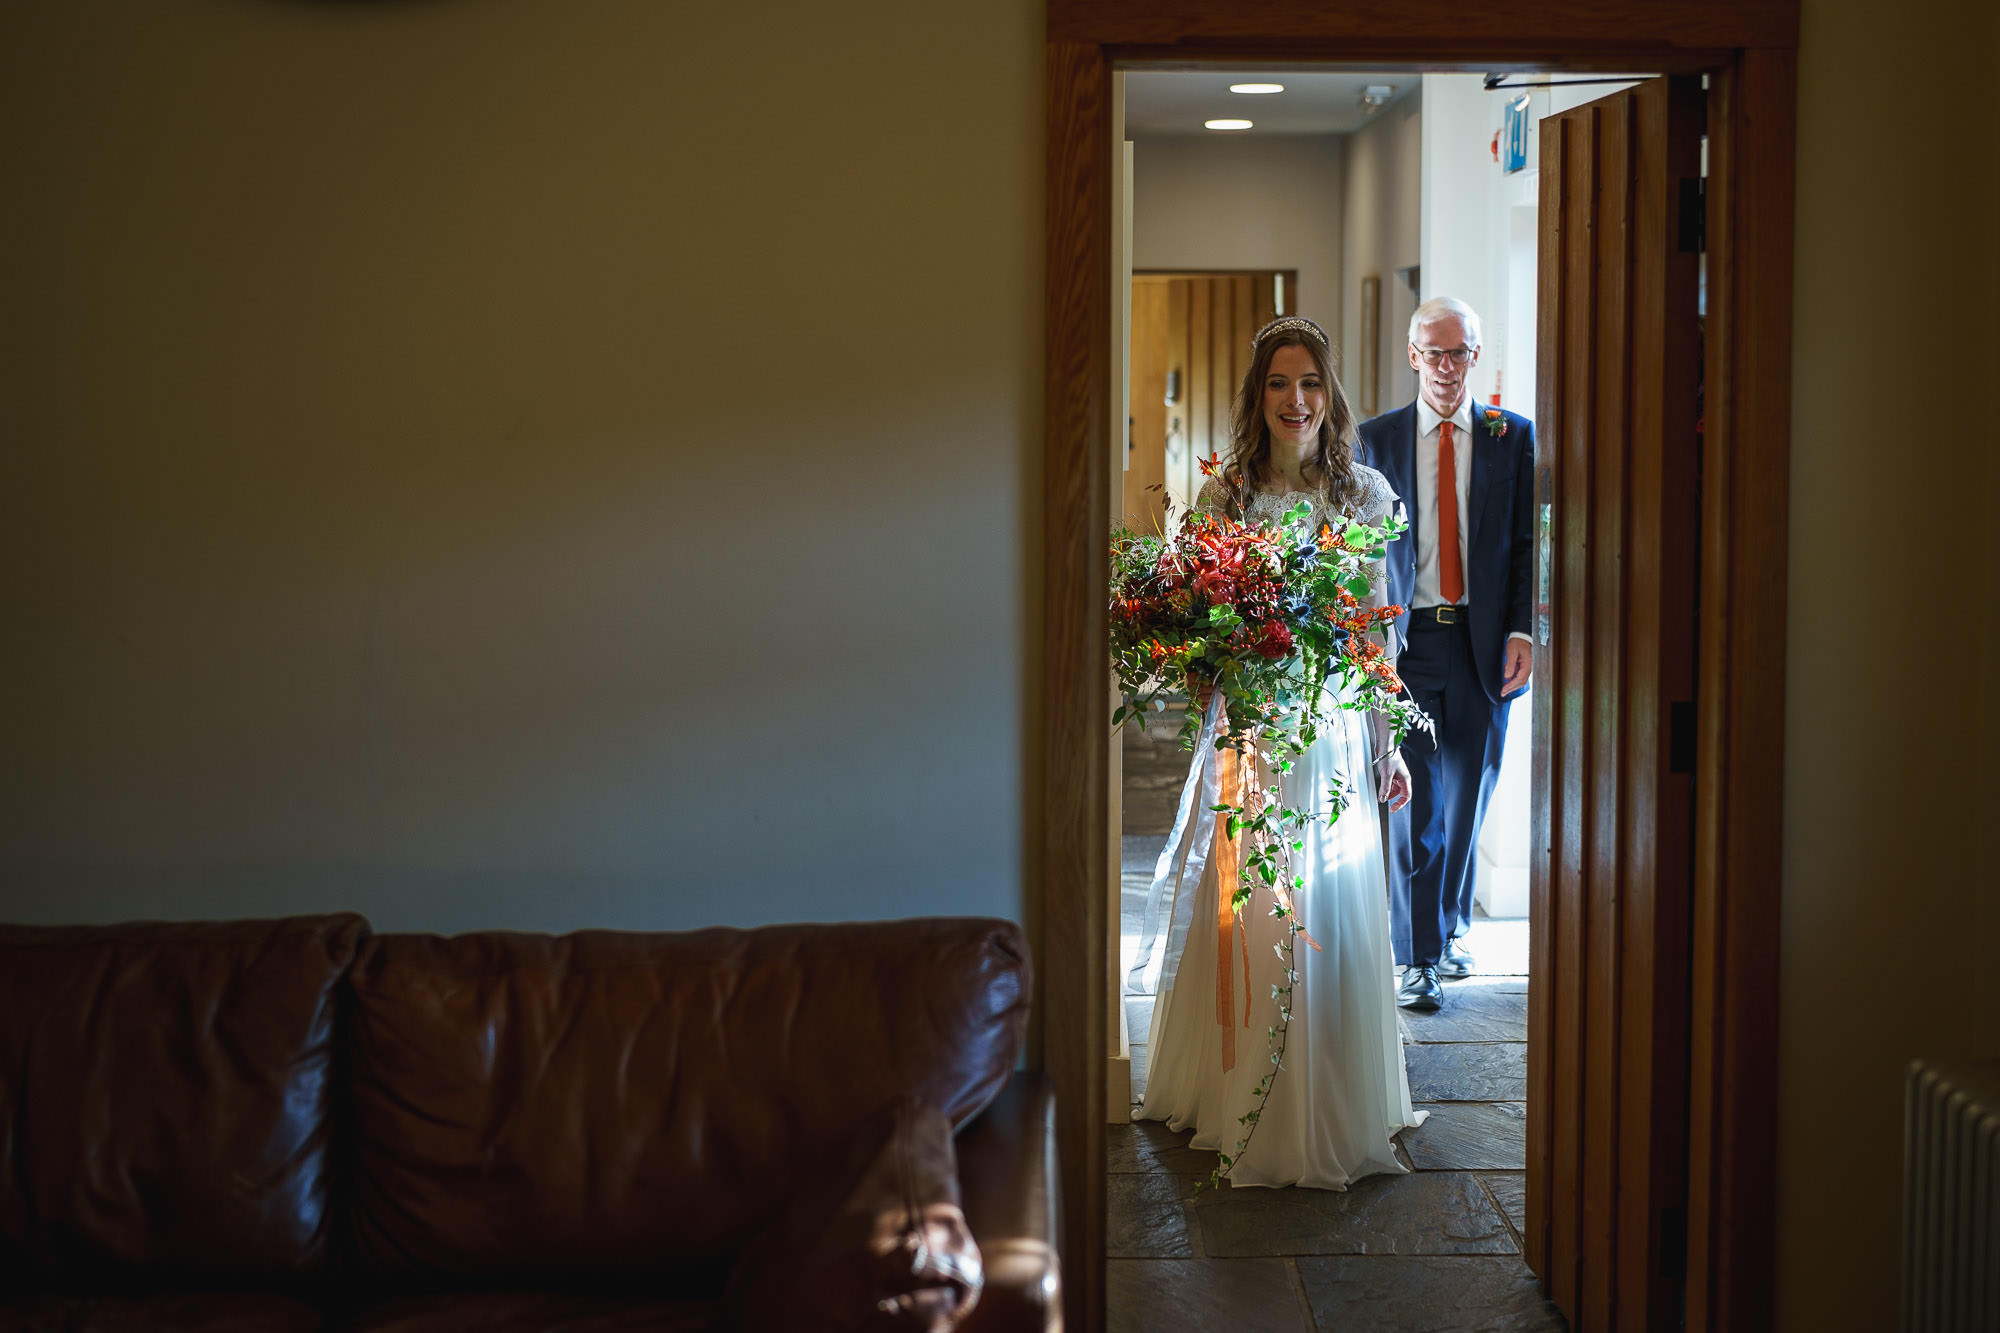 Gate Street Barn wedding photographer - Caroline + Rob